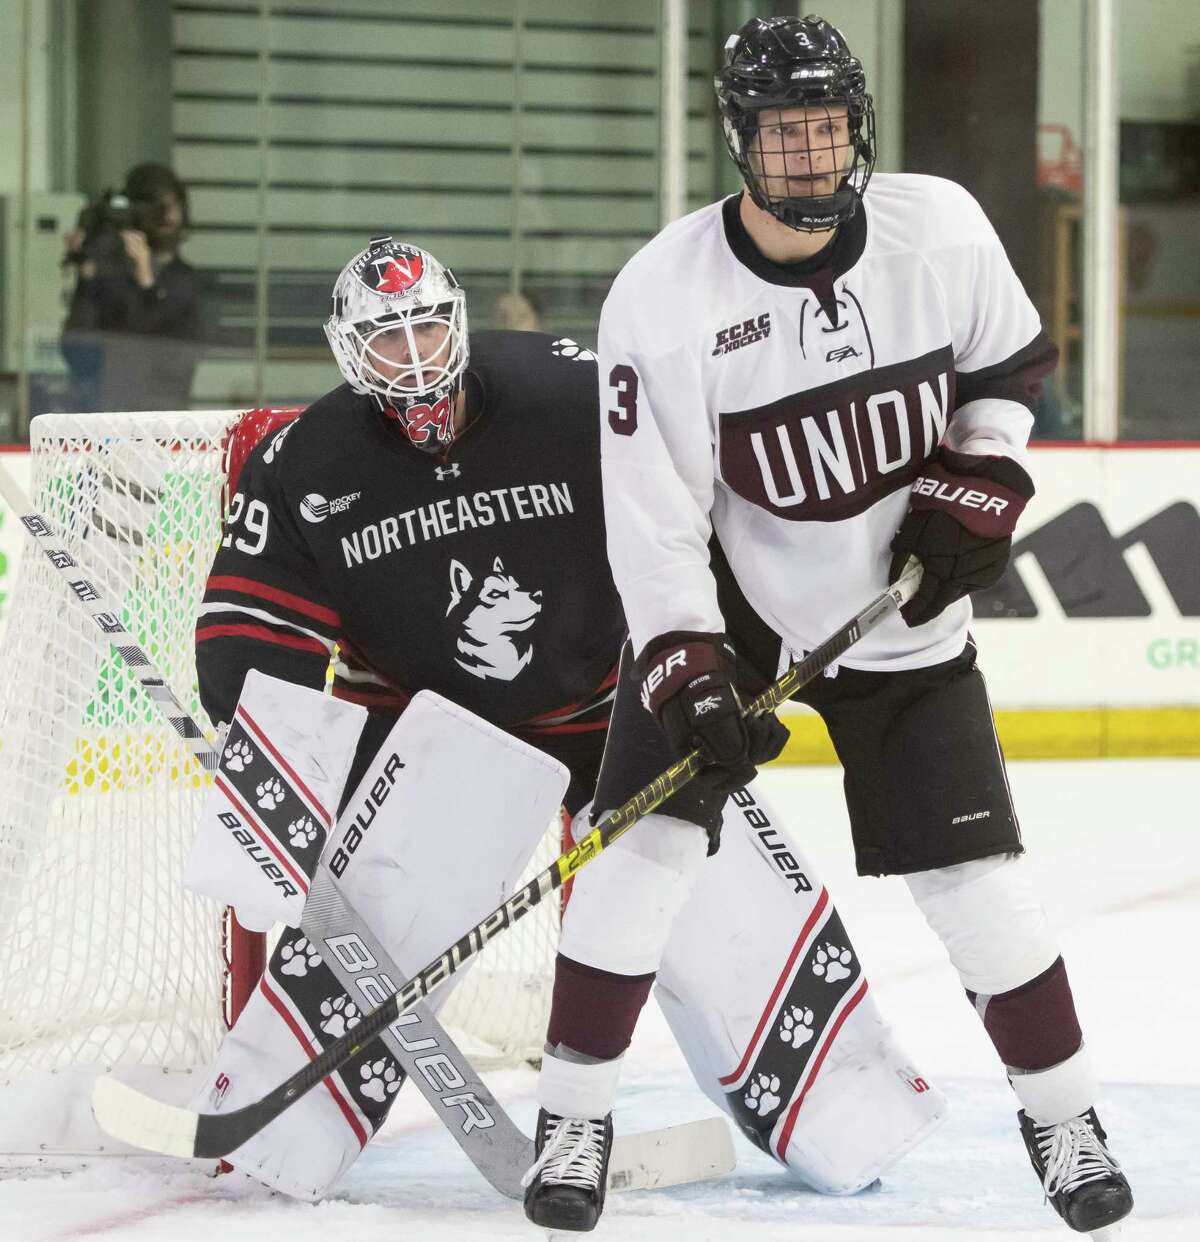 Union College announced Tuesday that it was canceling the seasons of its men's and women's hockey teams because of the ongoing coronavirus pandemic. In this photograph, Union forward Colin Schmidt screens Northeastern goalie Craig Pantano during a game Saturday, Oct. 12, 2019, at Messa Rink in Schenectady, N.Y. (Jenn March, Special to the Times Union )